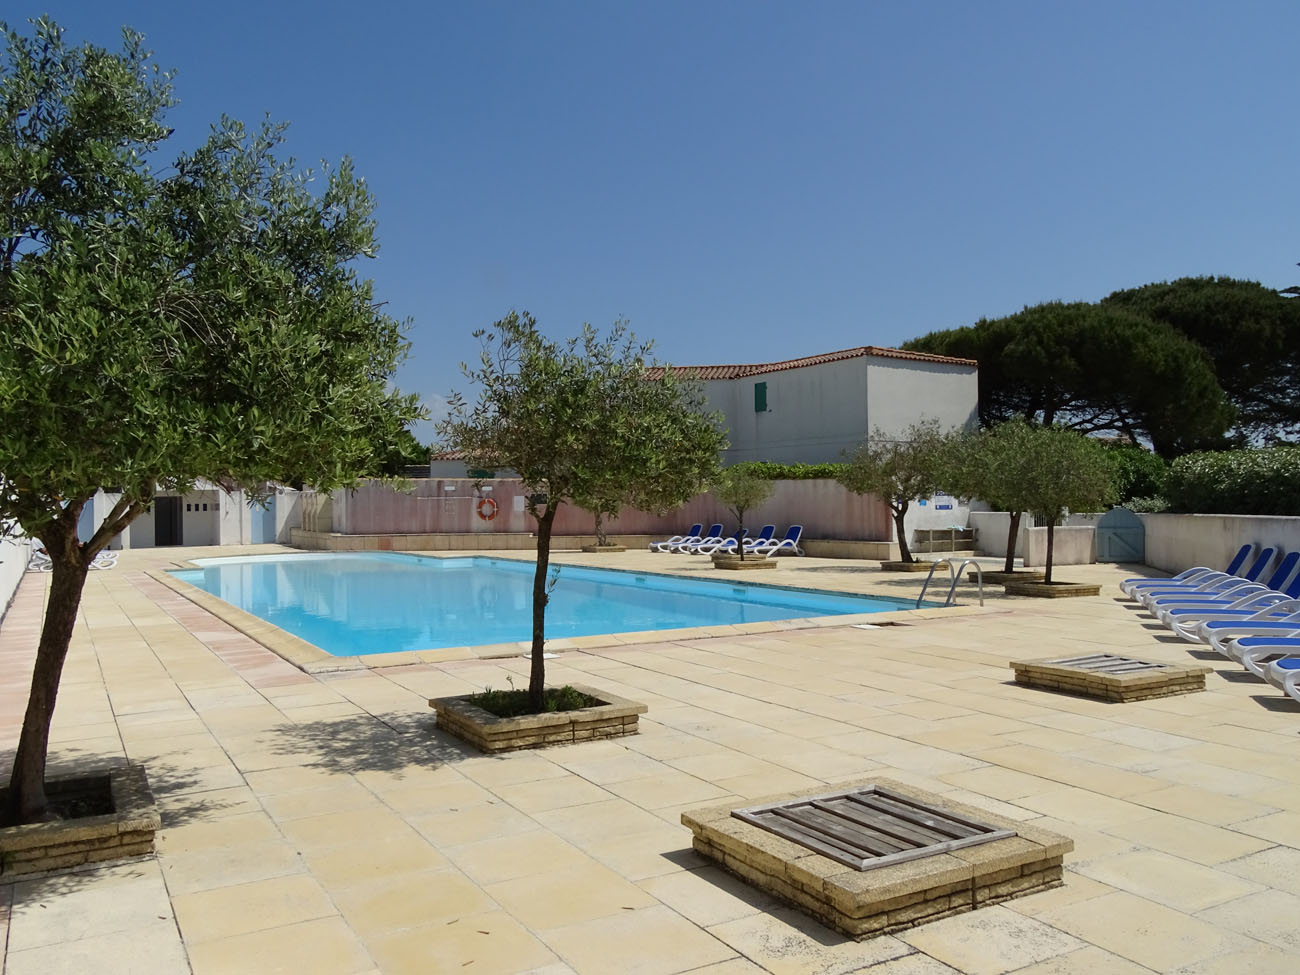 Location Appartement Ile de Ré - Valene - Piscine